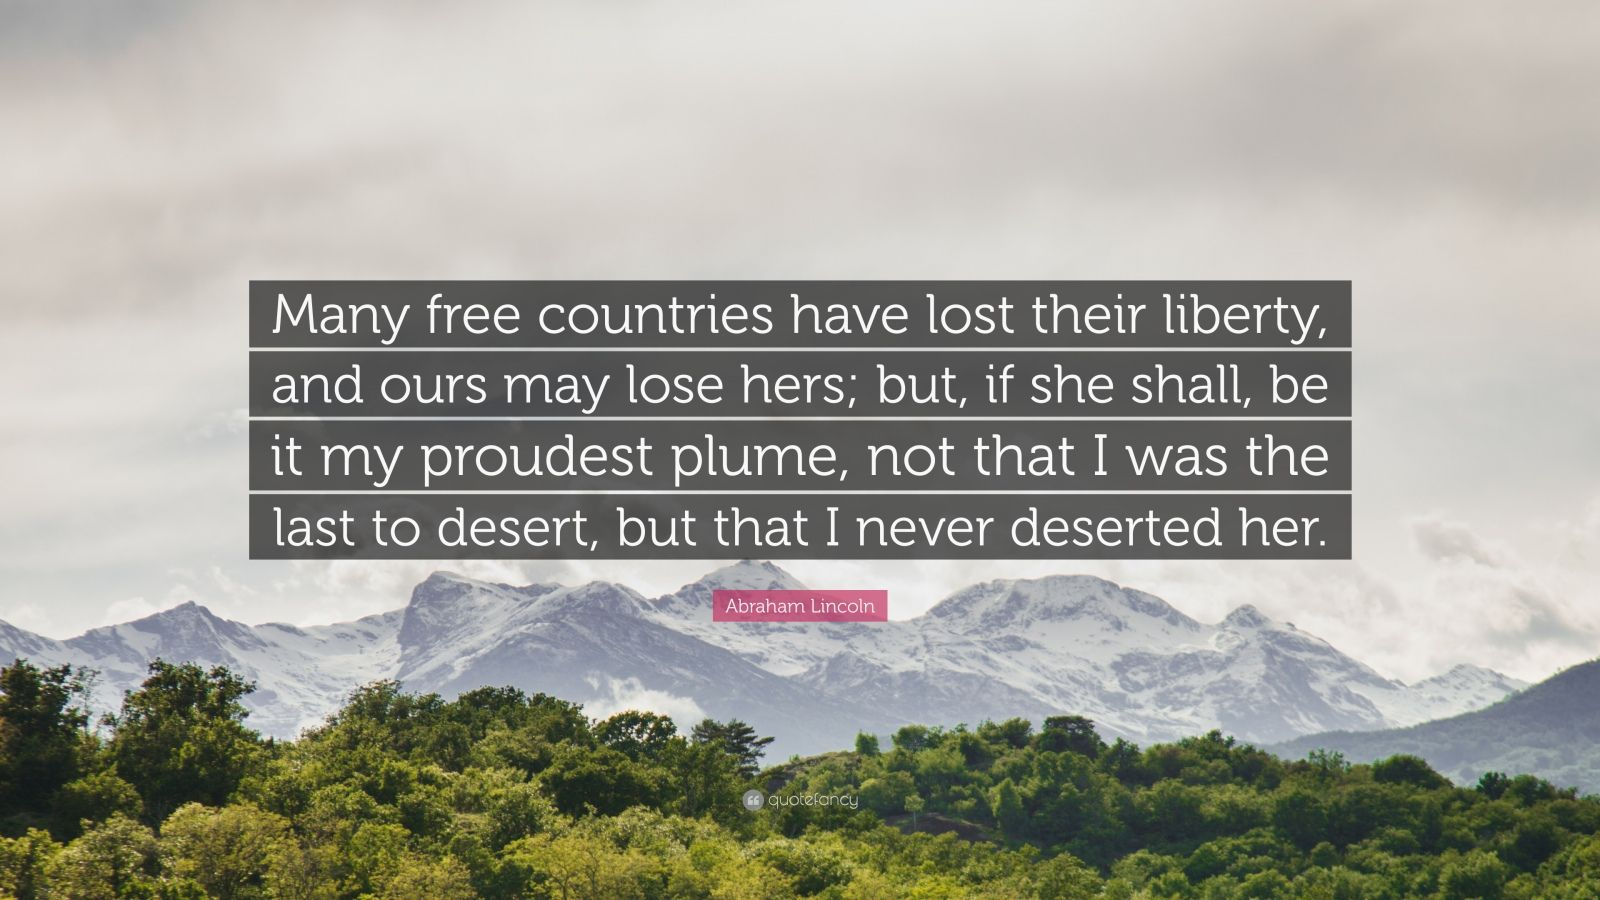 """Abraham Lincoln Quote: """"Many free countries have lost their liberty, and ours may lose hers; but, if she shall, be it my proudest plume, not that I was the last to desert, but that I never deserted her."""""""